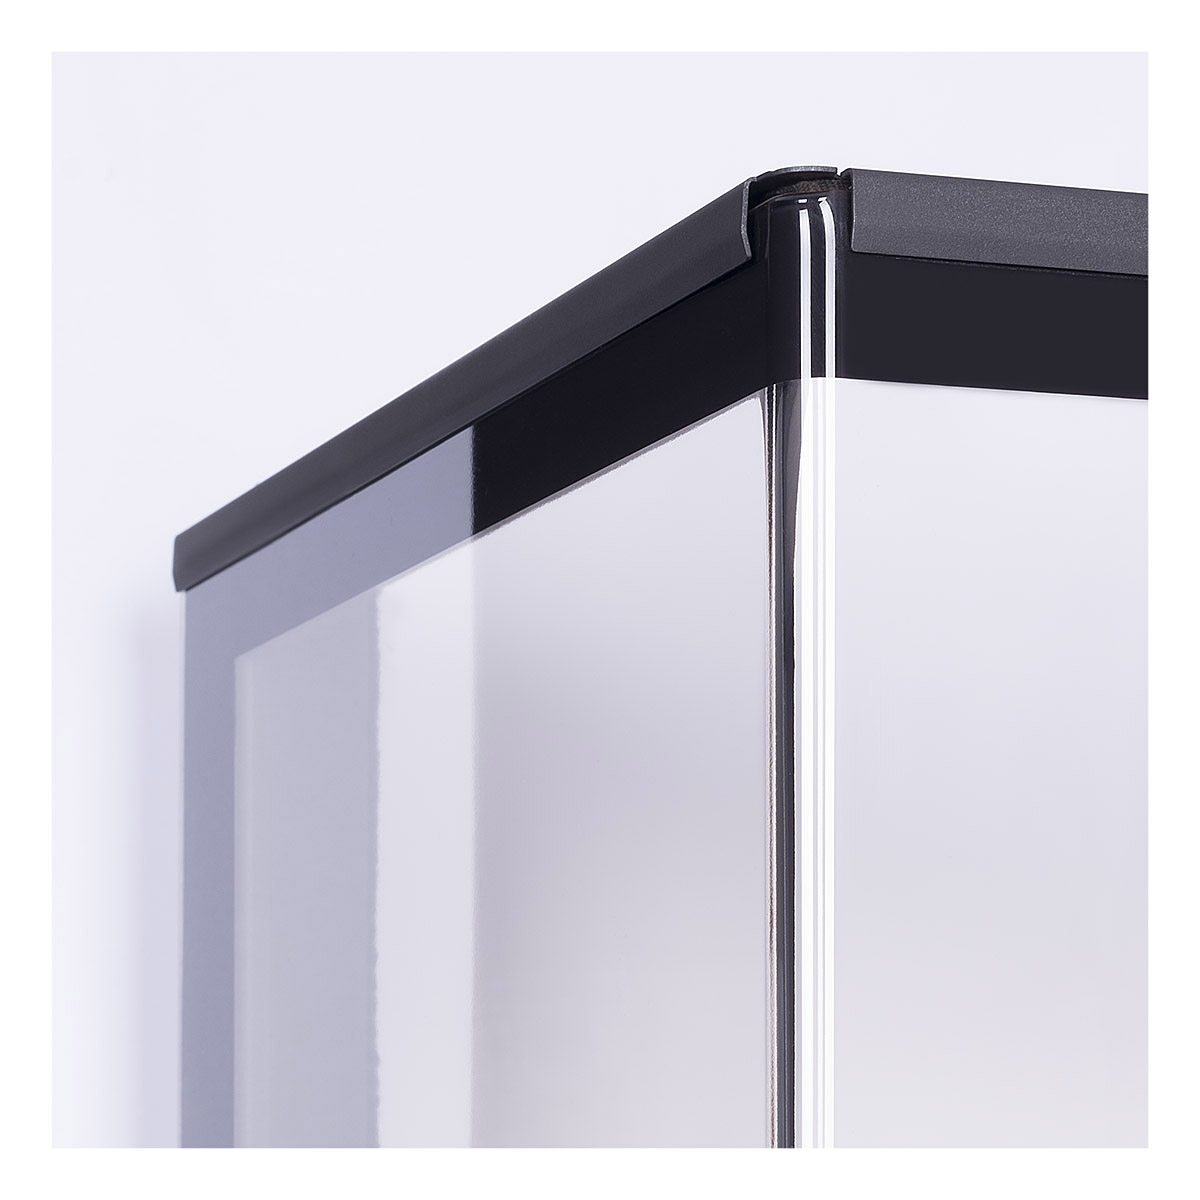 HEAT R/L 2g S 60.44.33.13(23) - corner fireplace insert with bent (split) glazing